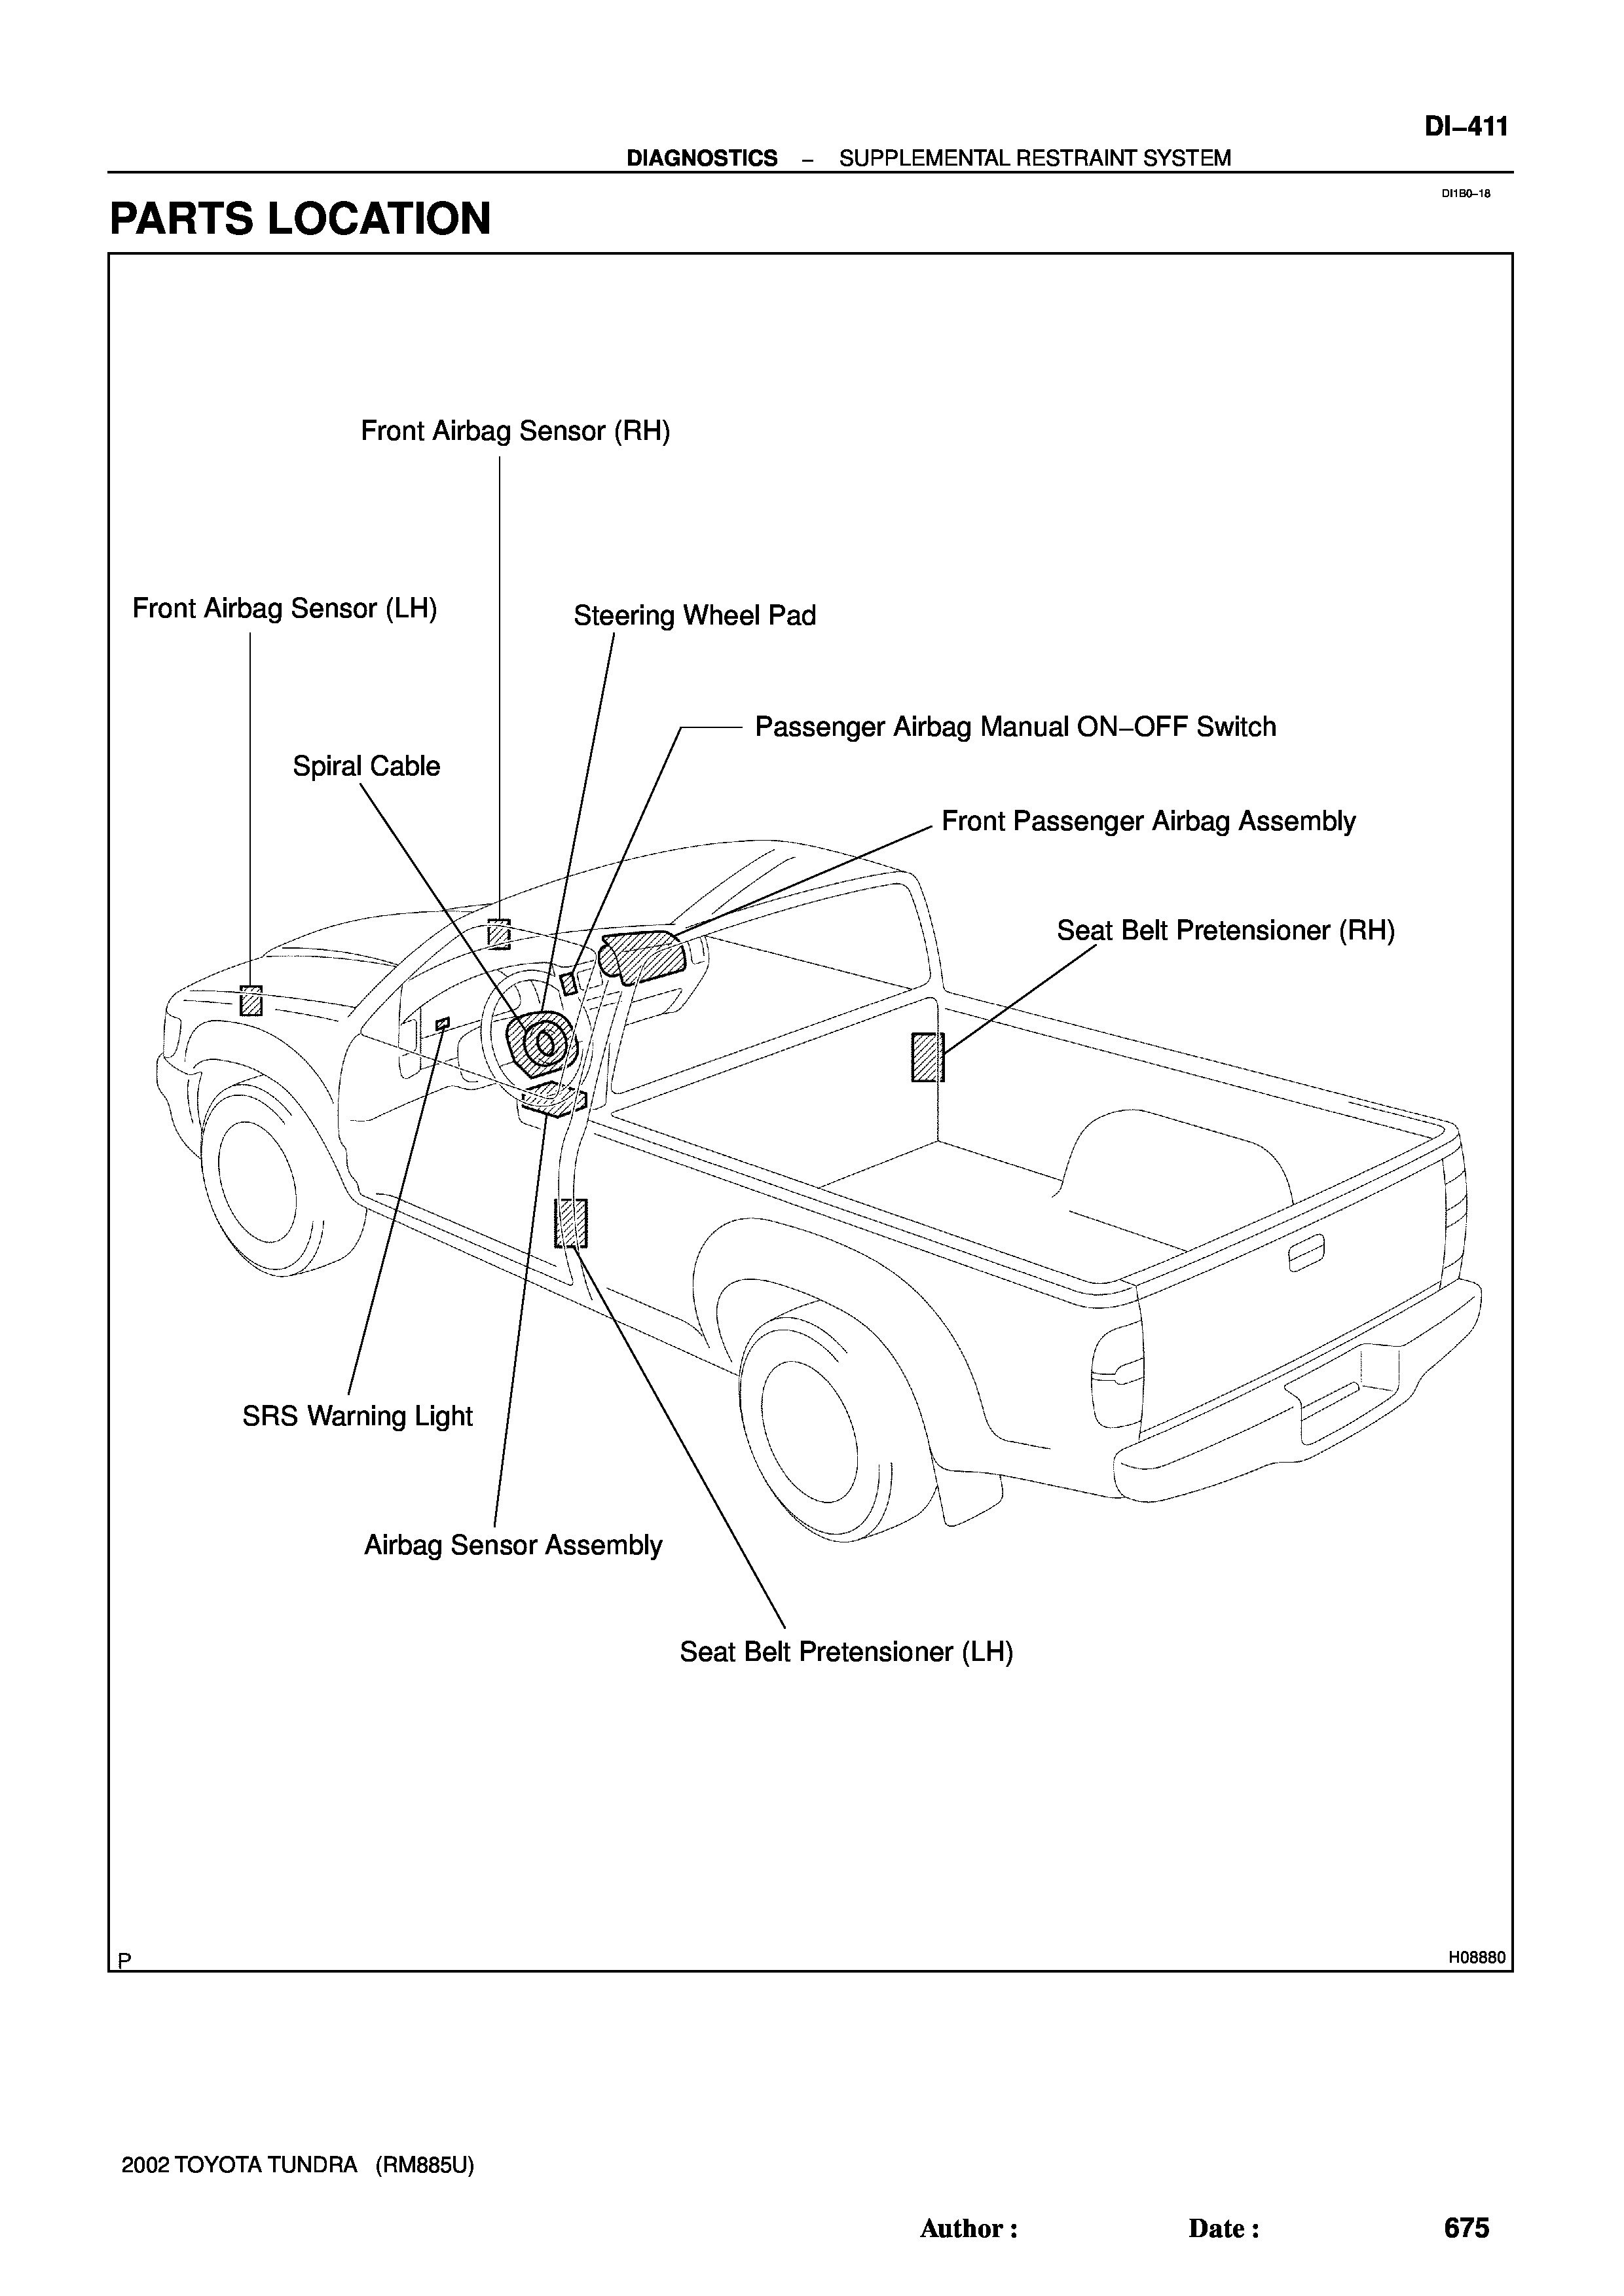 2002 Tundra Limited 4 7l Airbag Light Is On Getting